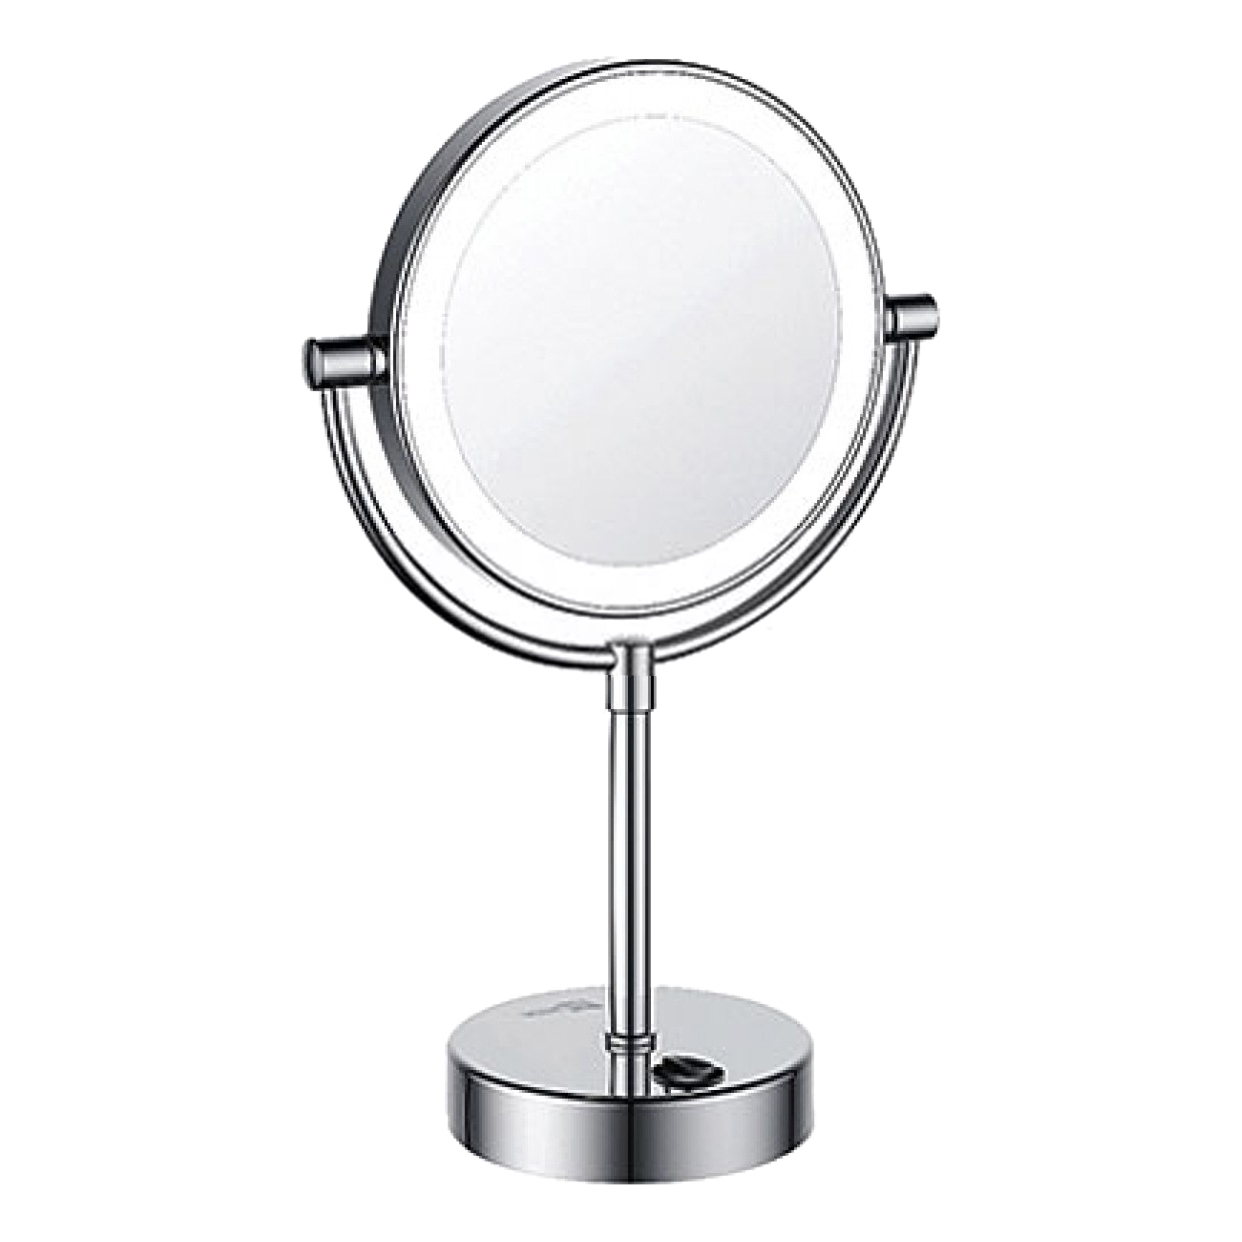 Mirror with LED WasserKRAFT K-1005 fashion women makeup mirror 8 led lights lamps cosmetic folding portable compact pocket hand mirror makeup tool ulike porto